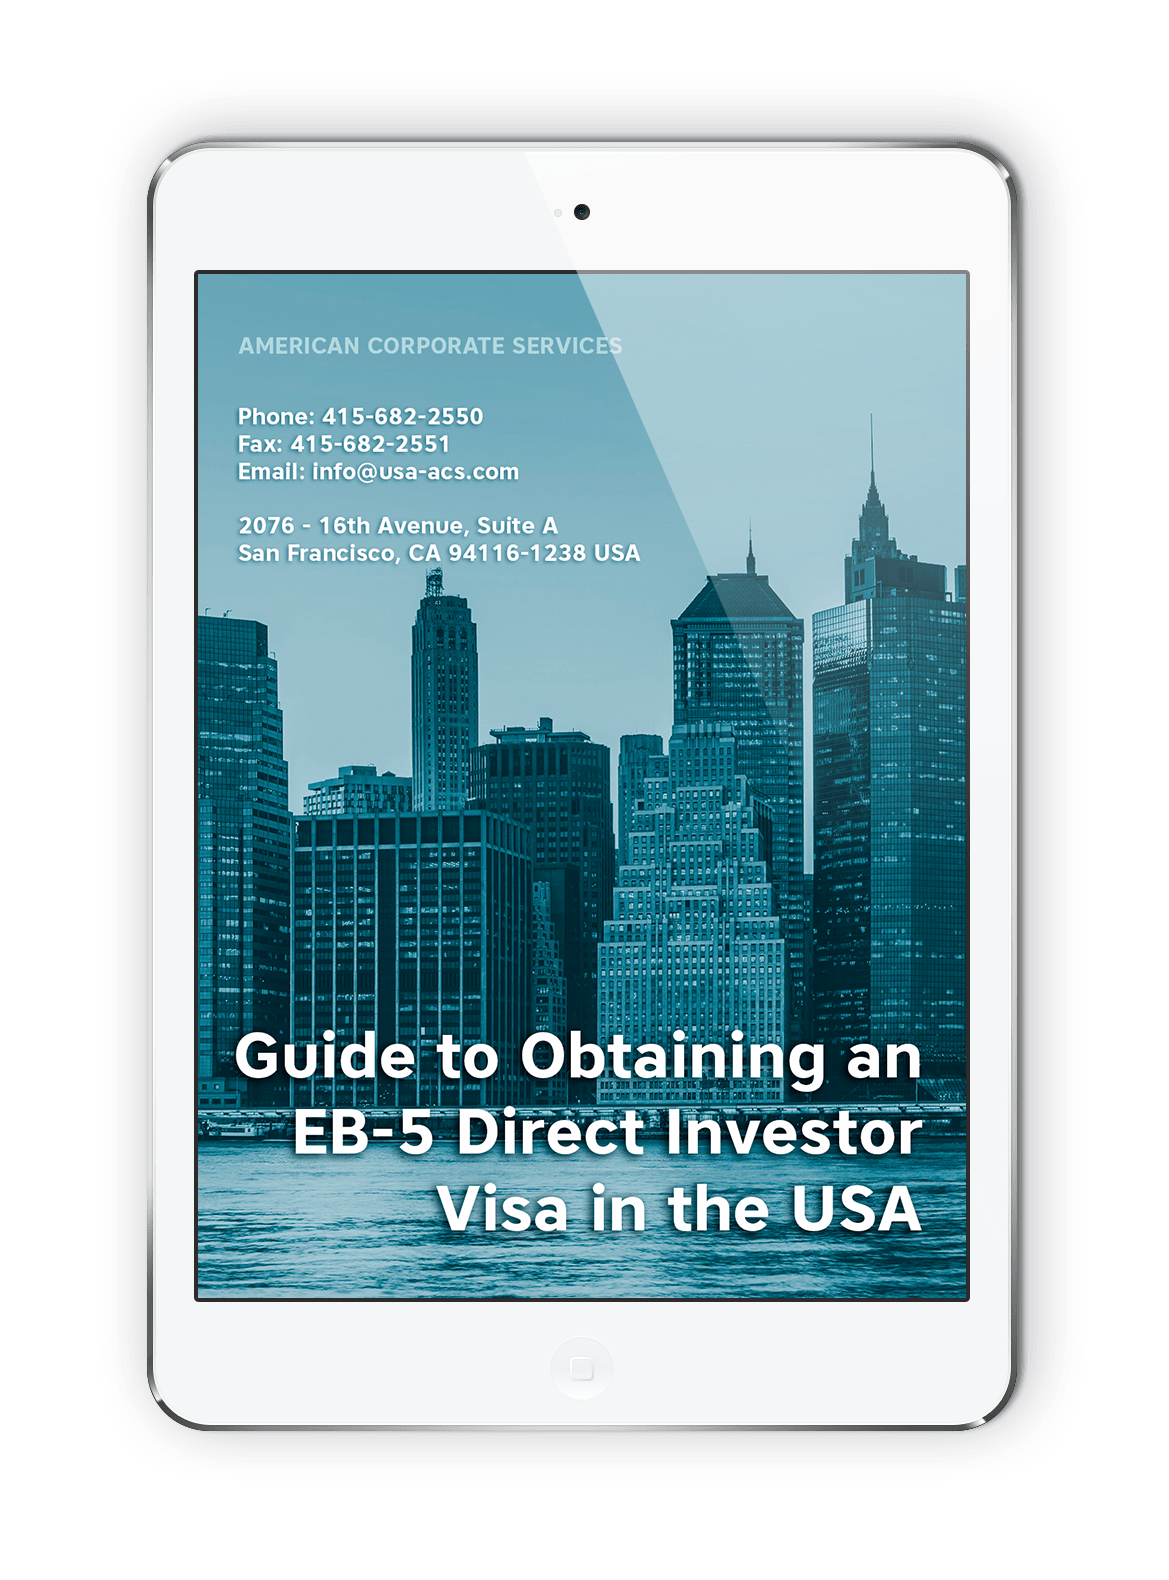 Guide to Obtaining an EB-5 Direct Investor Visa in the USA